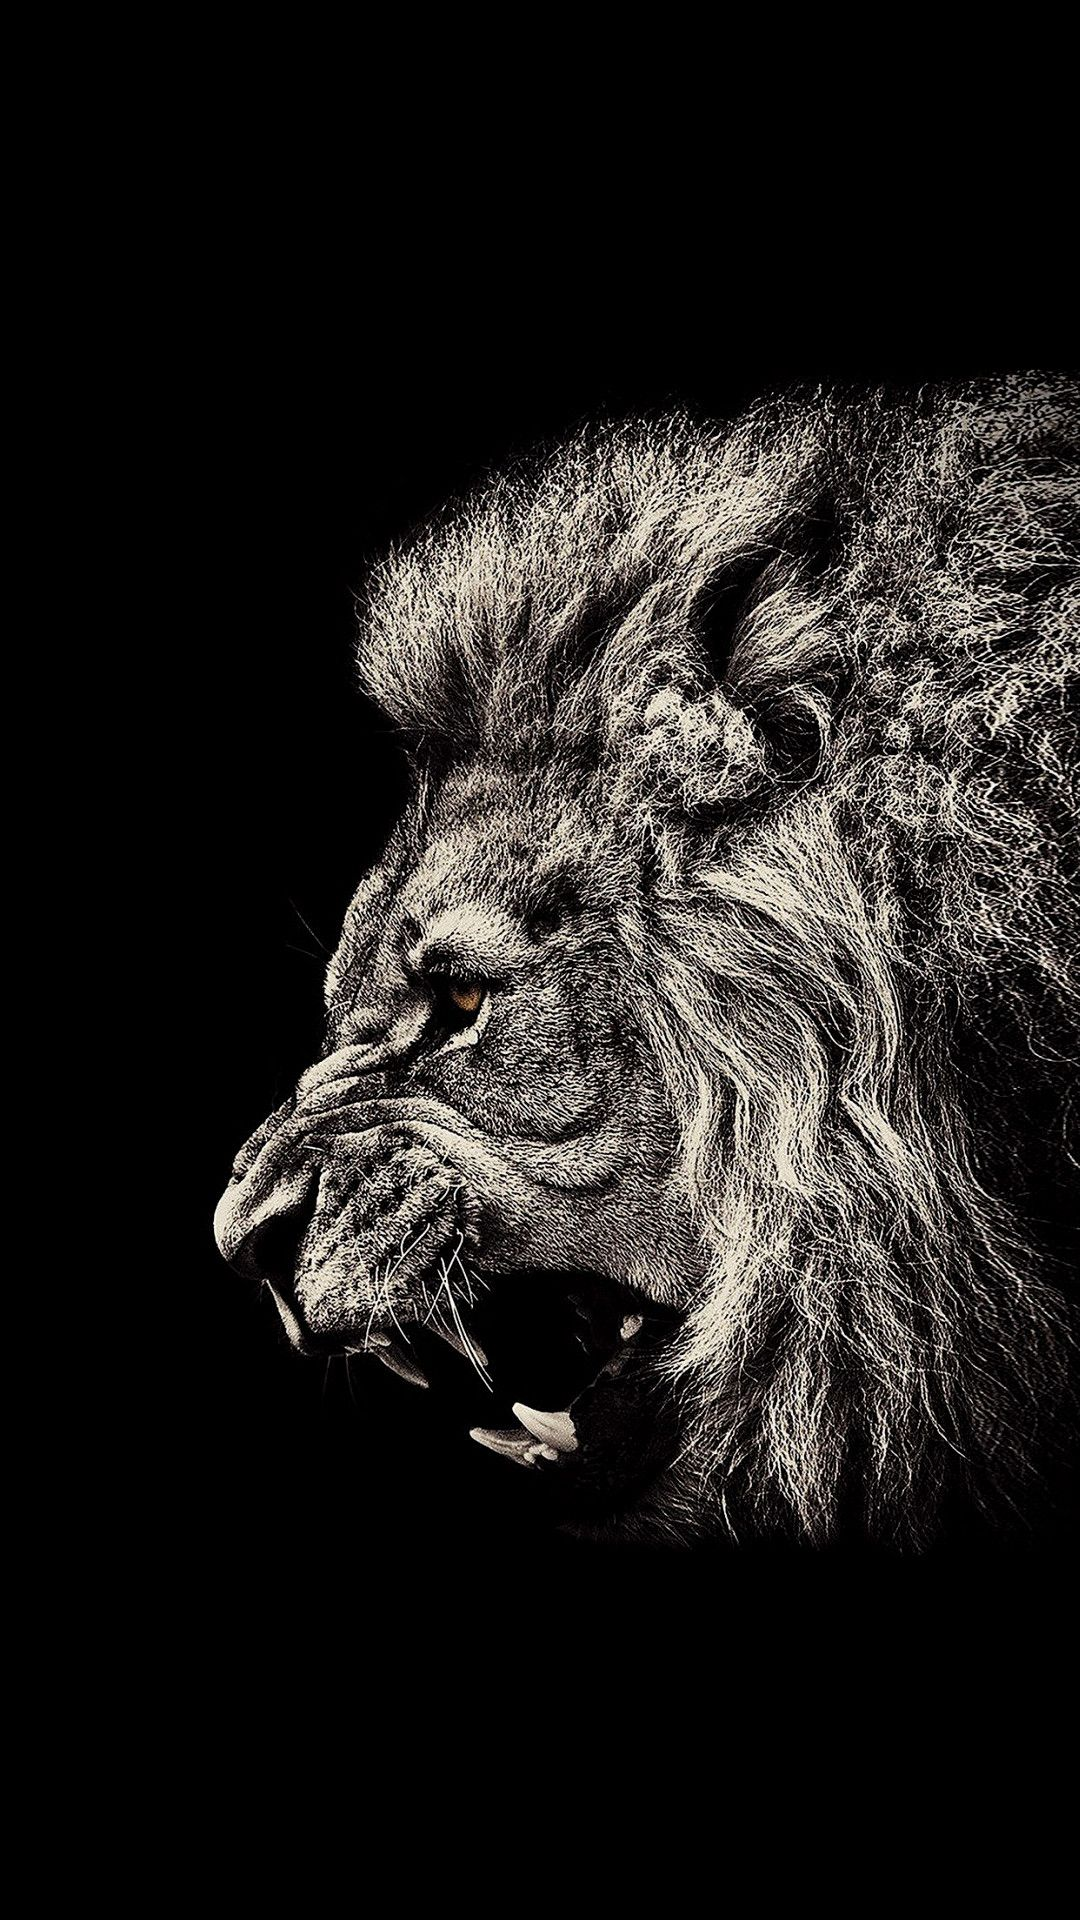 Lion Black Amoled Wallpaper 1080x1920 Need Iphone 6s Plus Wallpaper Background For Iphone6s Lion Wallpaper Dark Wallpaper Iphone Lion Wallpaper Iphone